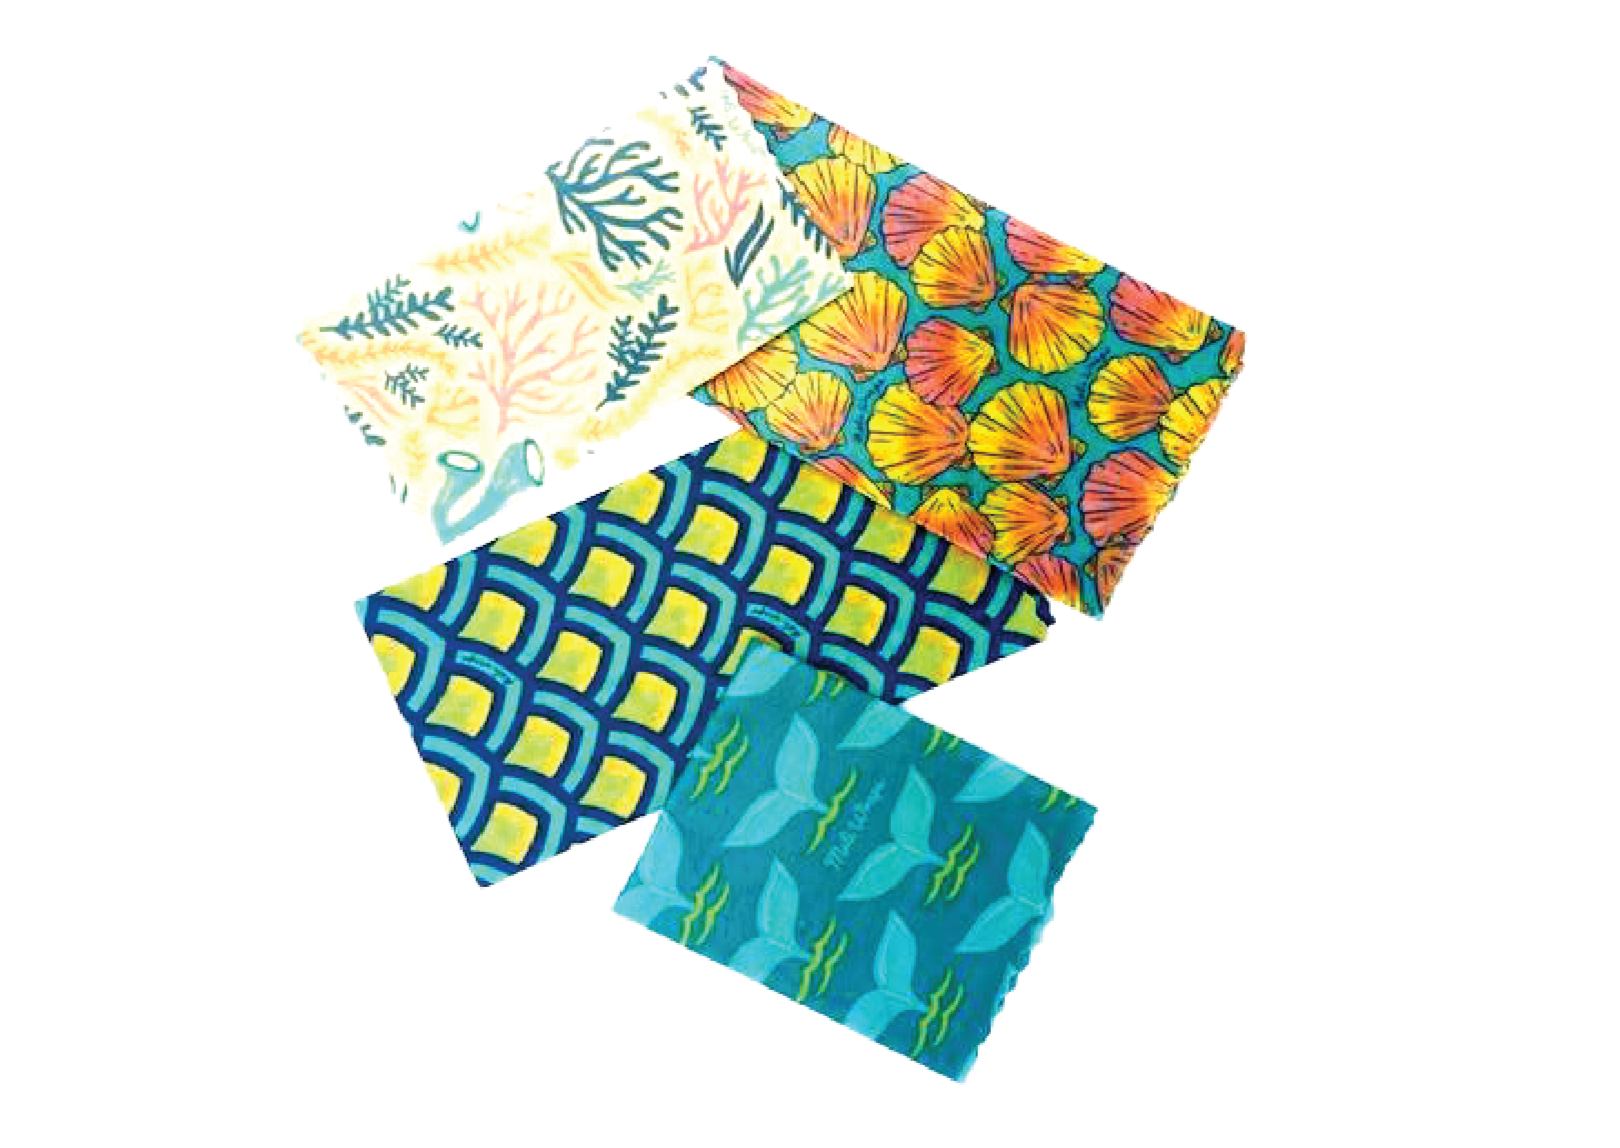 Meli Wraps Reusable Beeswax Wrap - Ocean Variety Pack